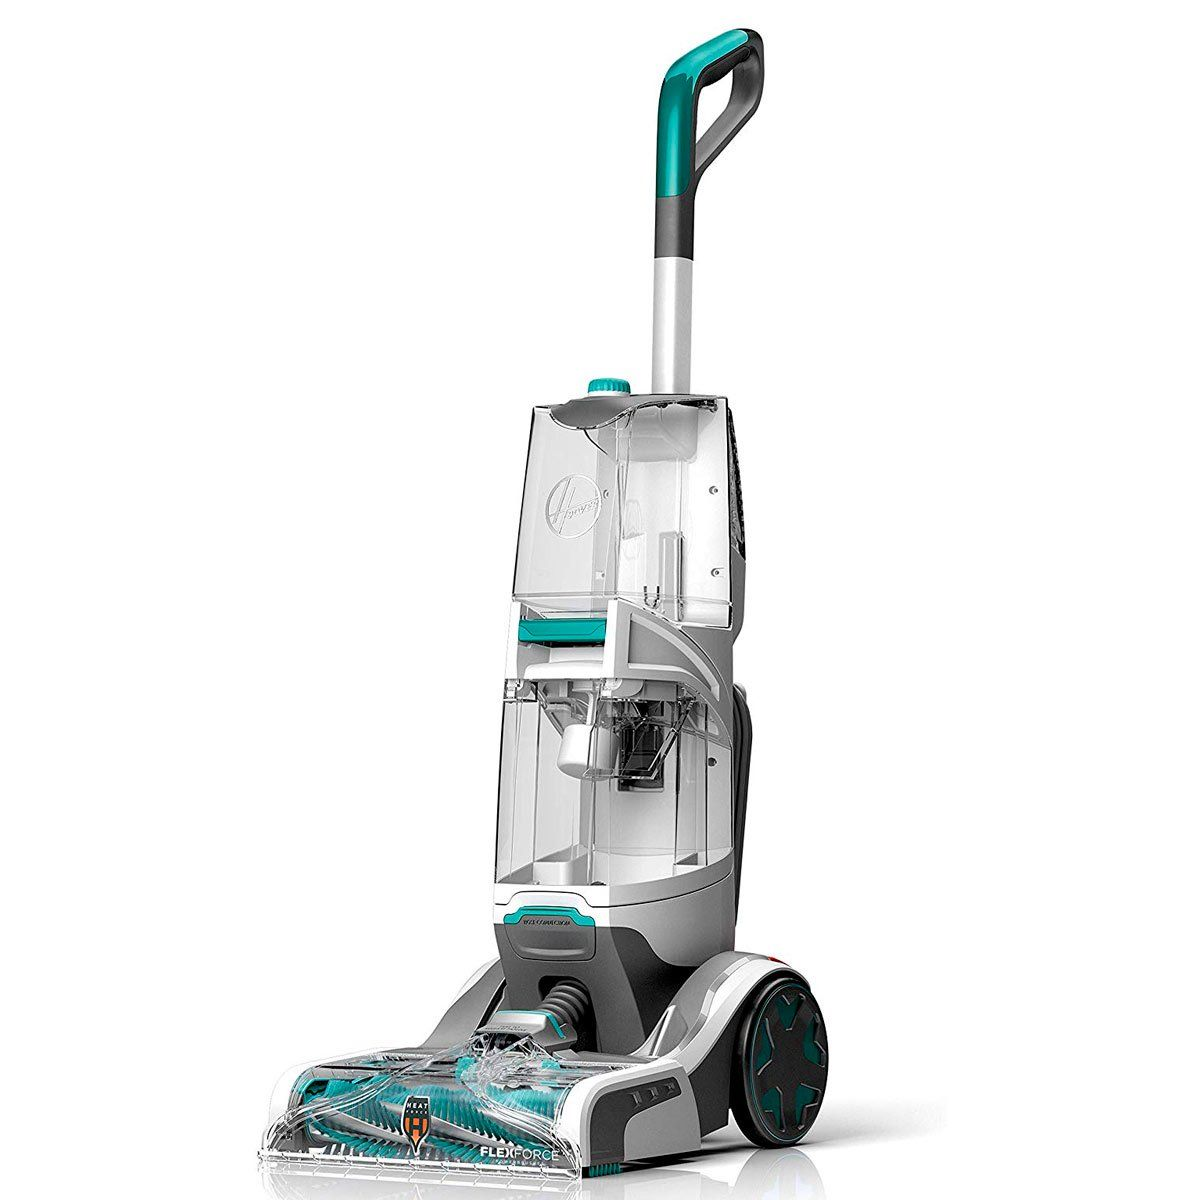 Amazing Offer On Steam Mop Cleaner Thermapro 10 In 1 Convenient